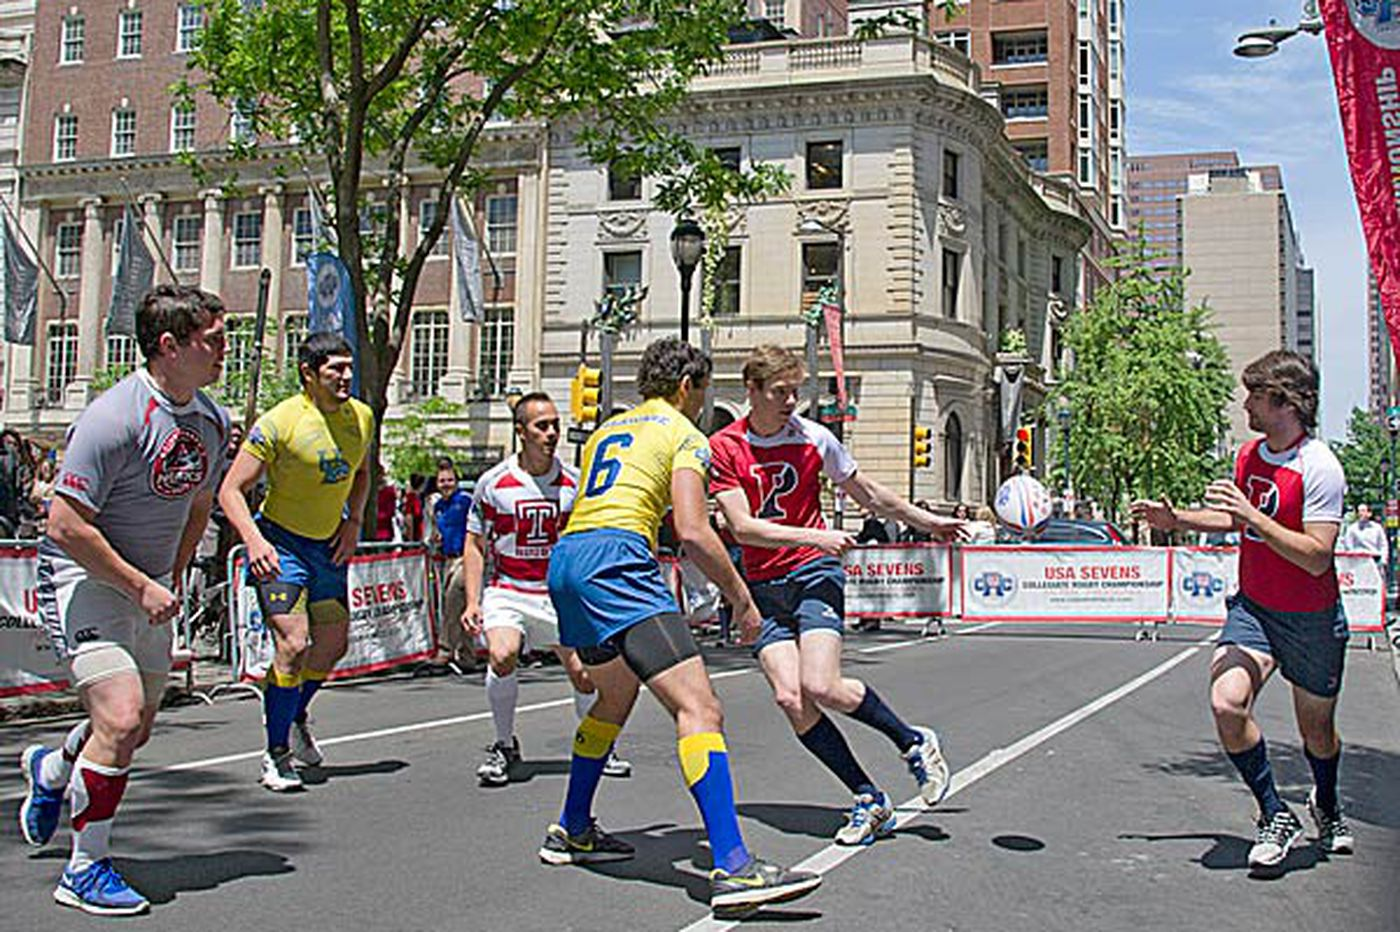 College teams demonstrate rugby at Rittenhouse Square